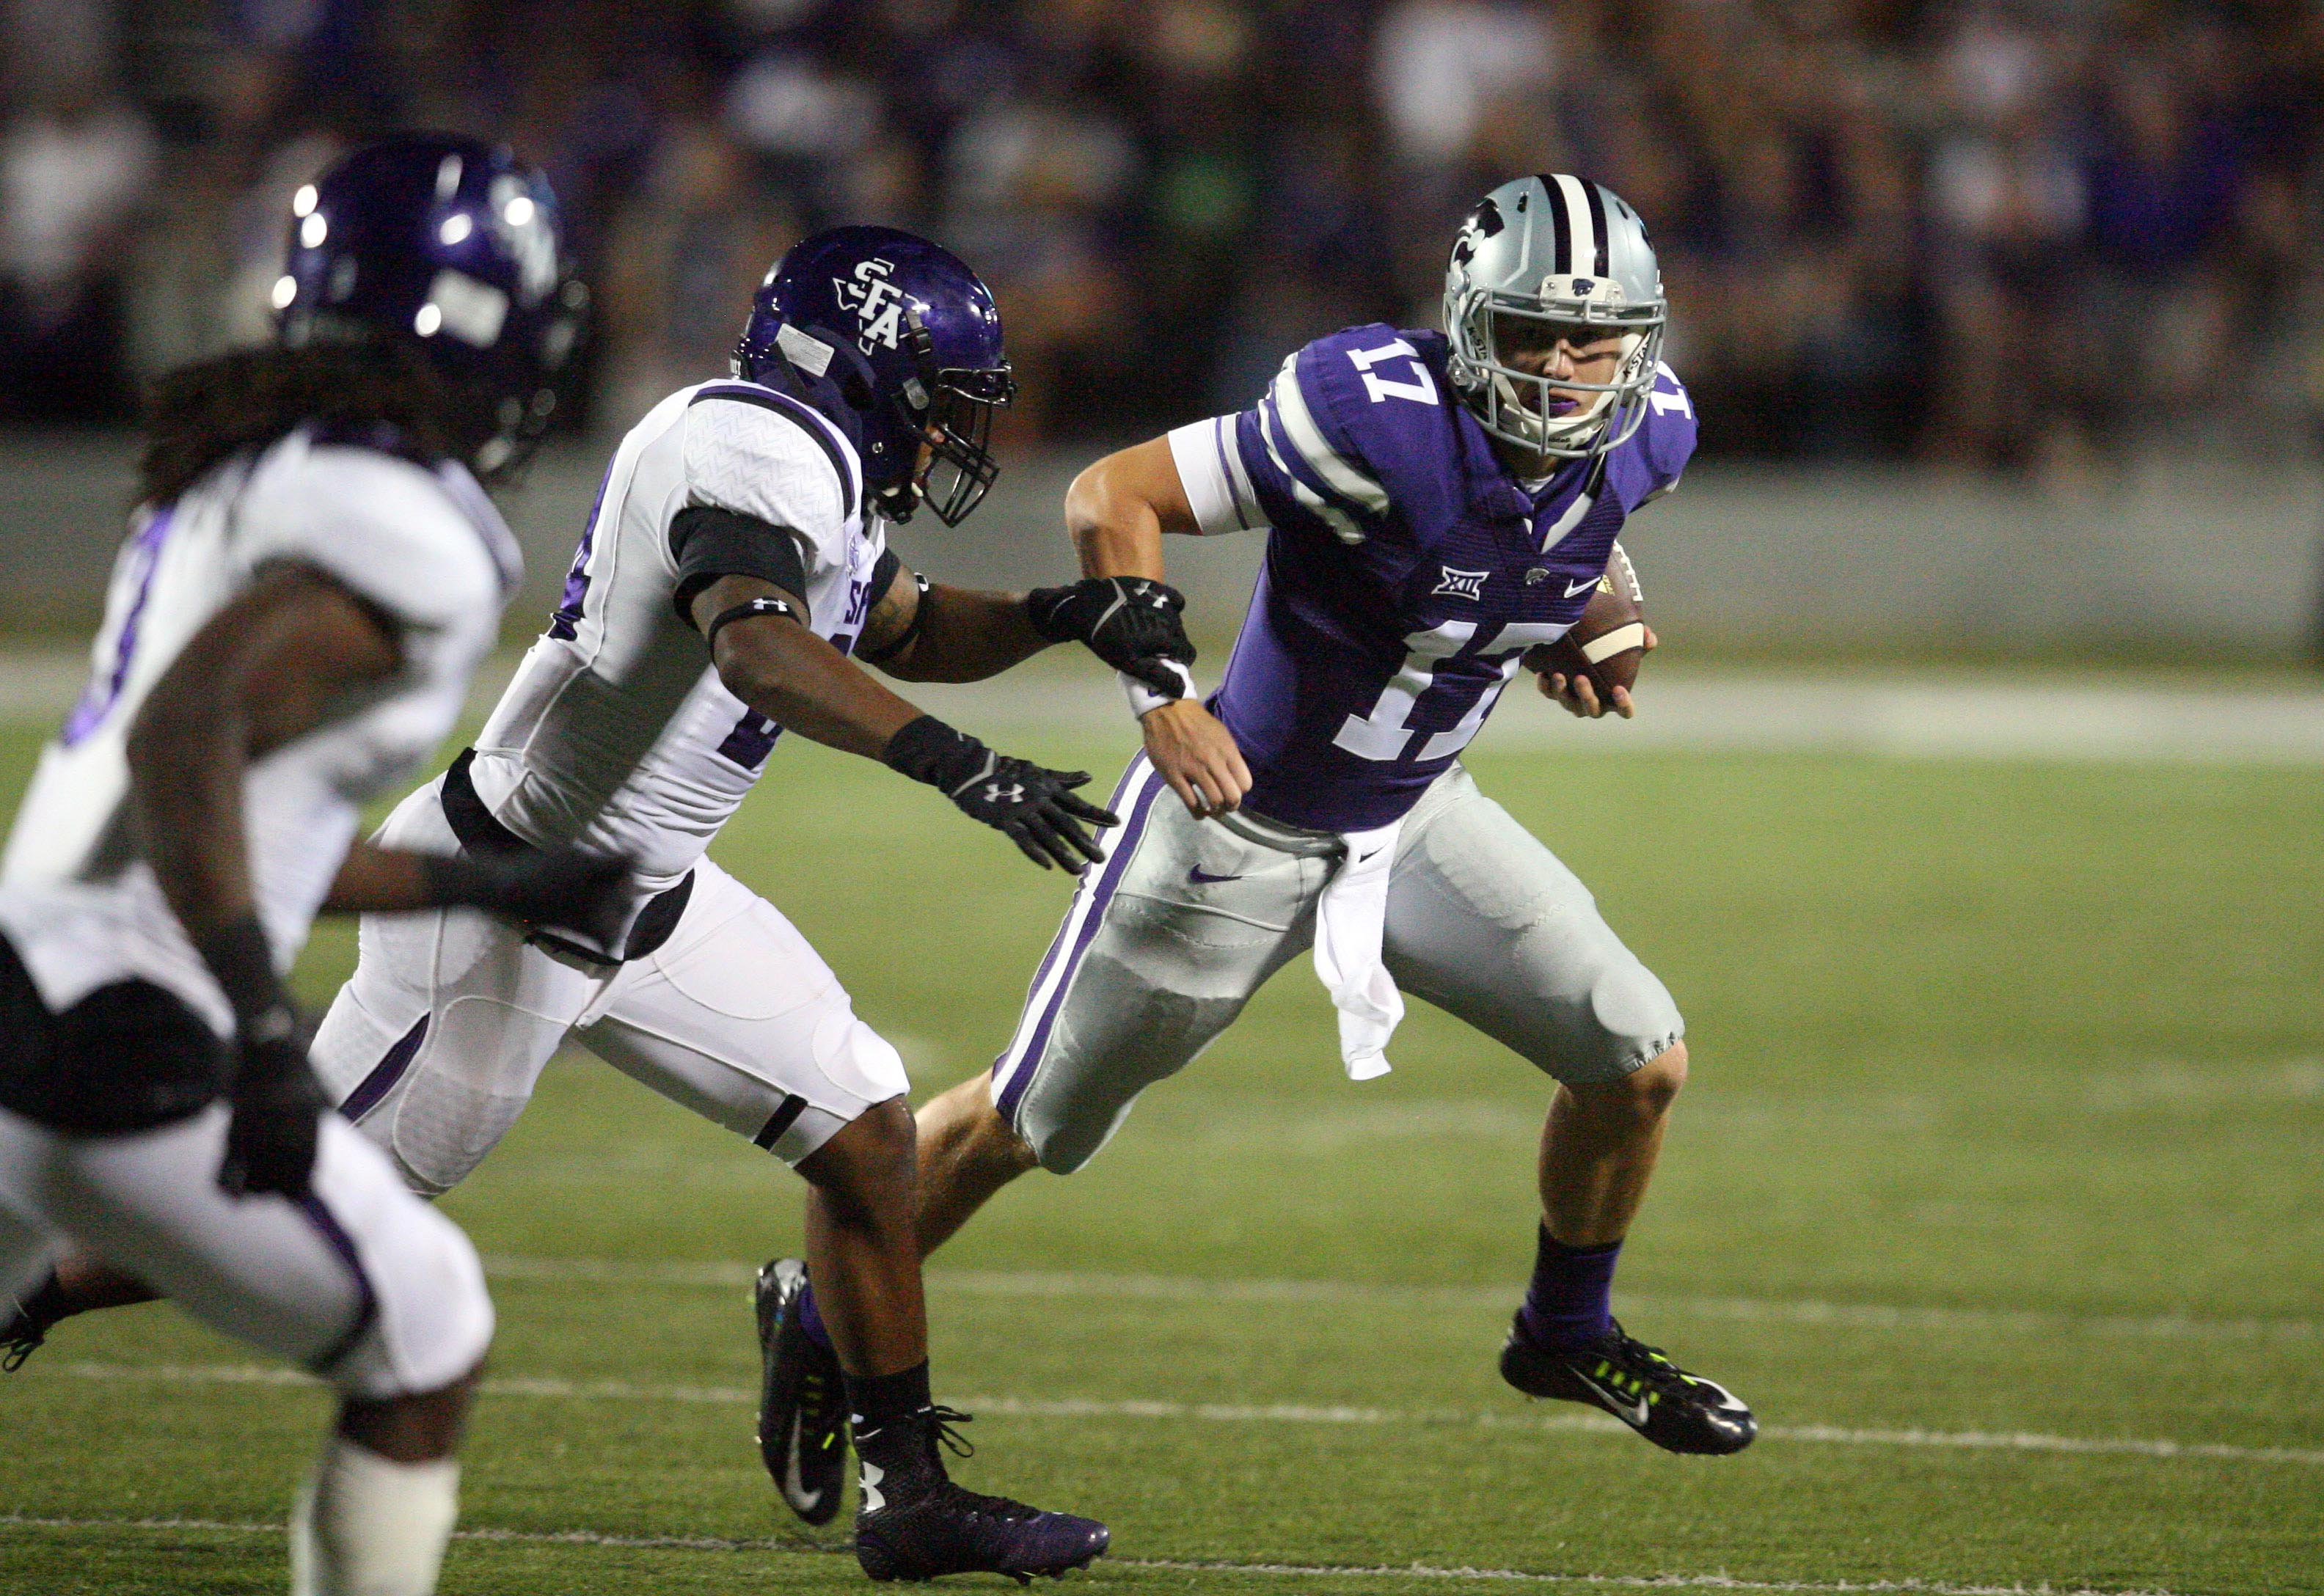 I said you wouldn't have to wait long to read a Countdown post for K-State's likely starting quarterback in 2015, and I always keep my promises.